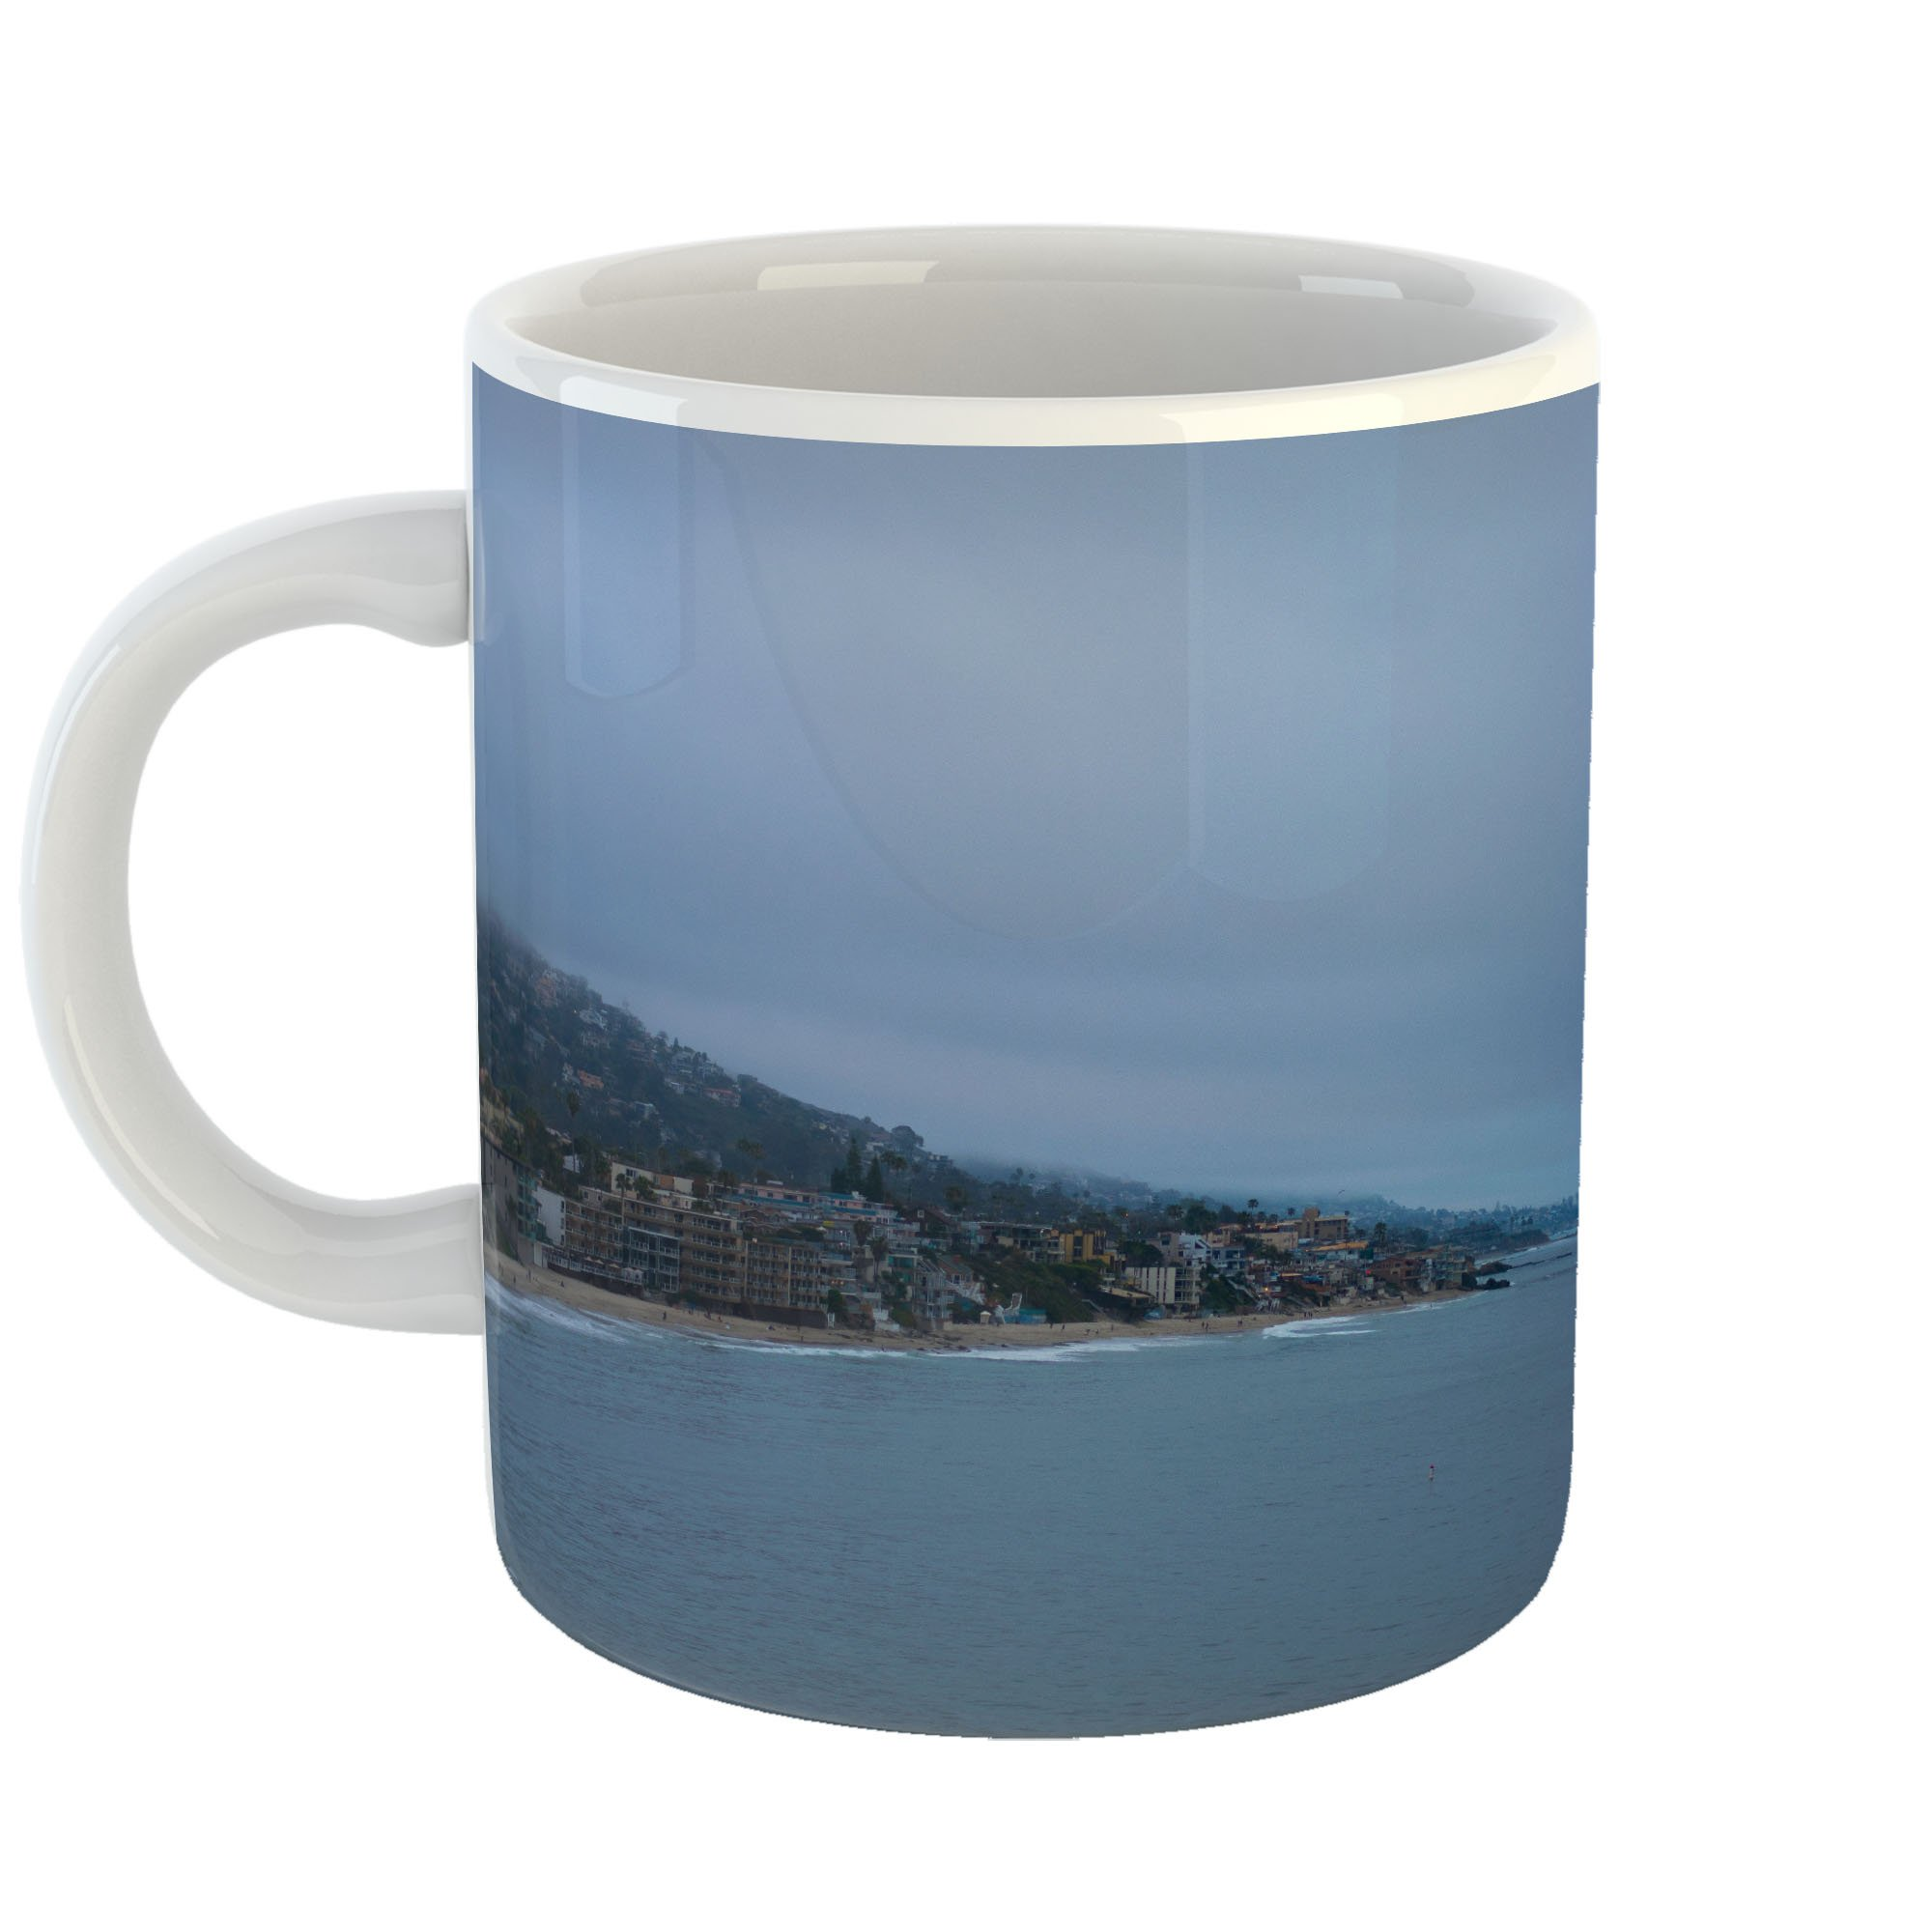 Westlake Art - Hotel Sand - 11oz Coffee Cup Mug - Modern Picture Photography Artwork Home Office Birthday Gift - 11 Ounce (D5EF-CC515)